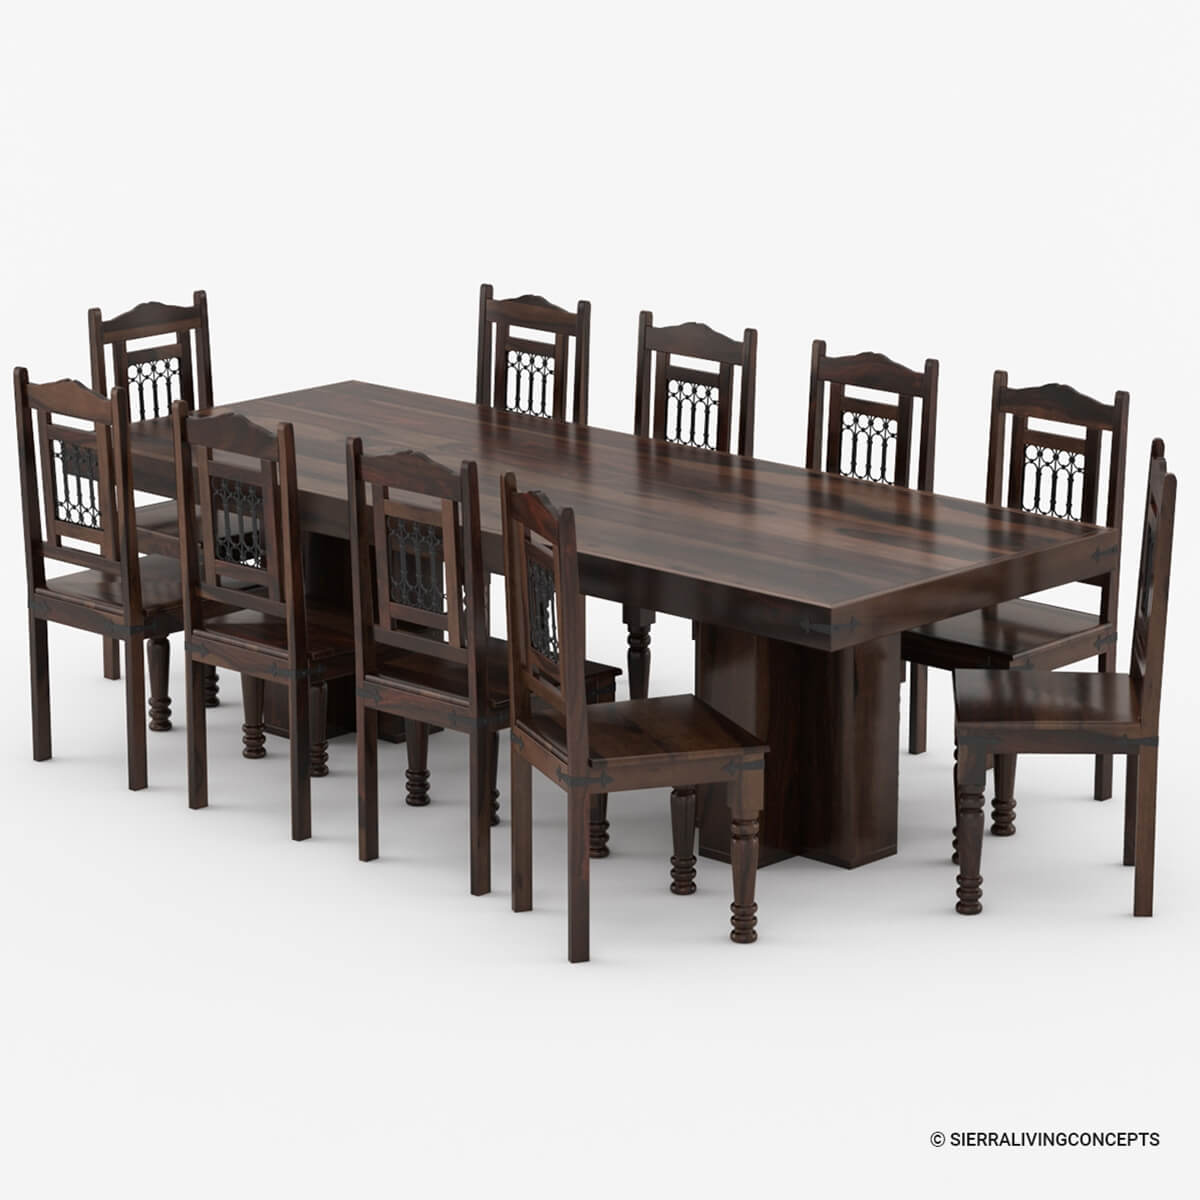 dallas classic solid wood double pedestal dining set for 8 people. Black Bedroom Furniture Sets. Home Design Ideas